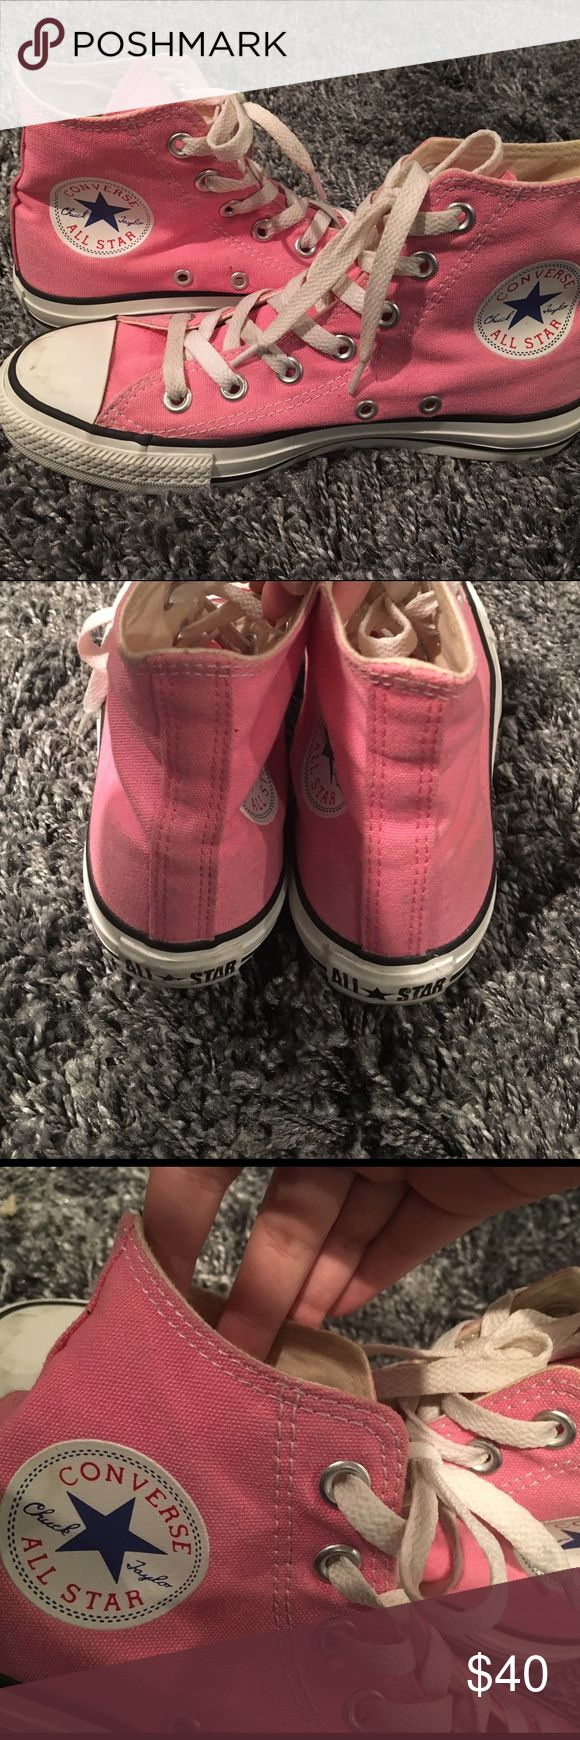 Pink High Top Converse Worn once or twice, amazing condition, will clean any markings, if any, before shipping(: Converse Shoes Sneakers